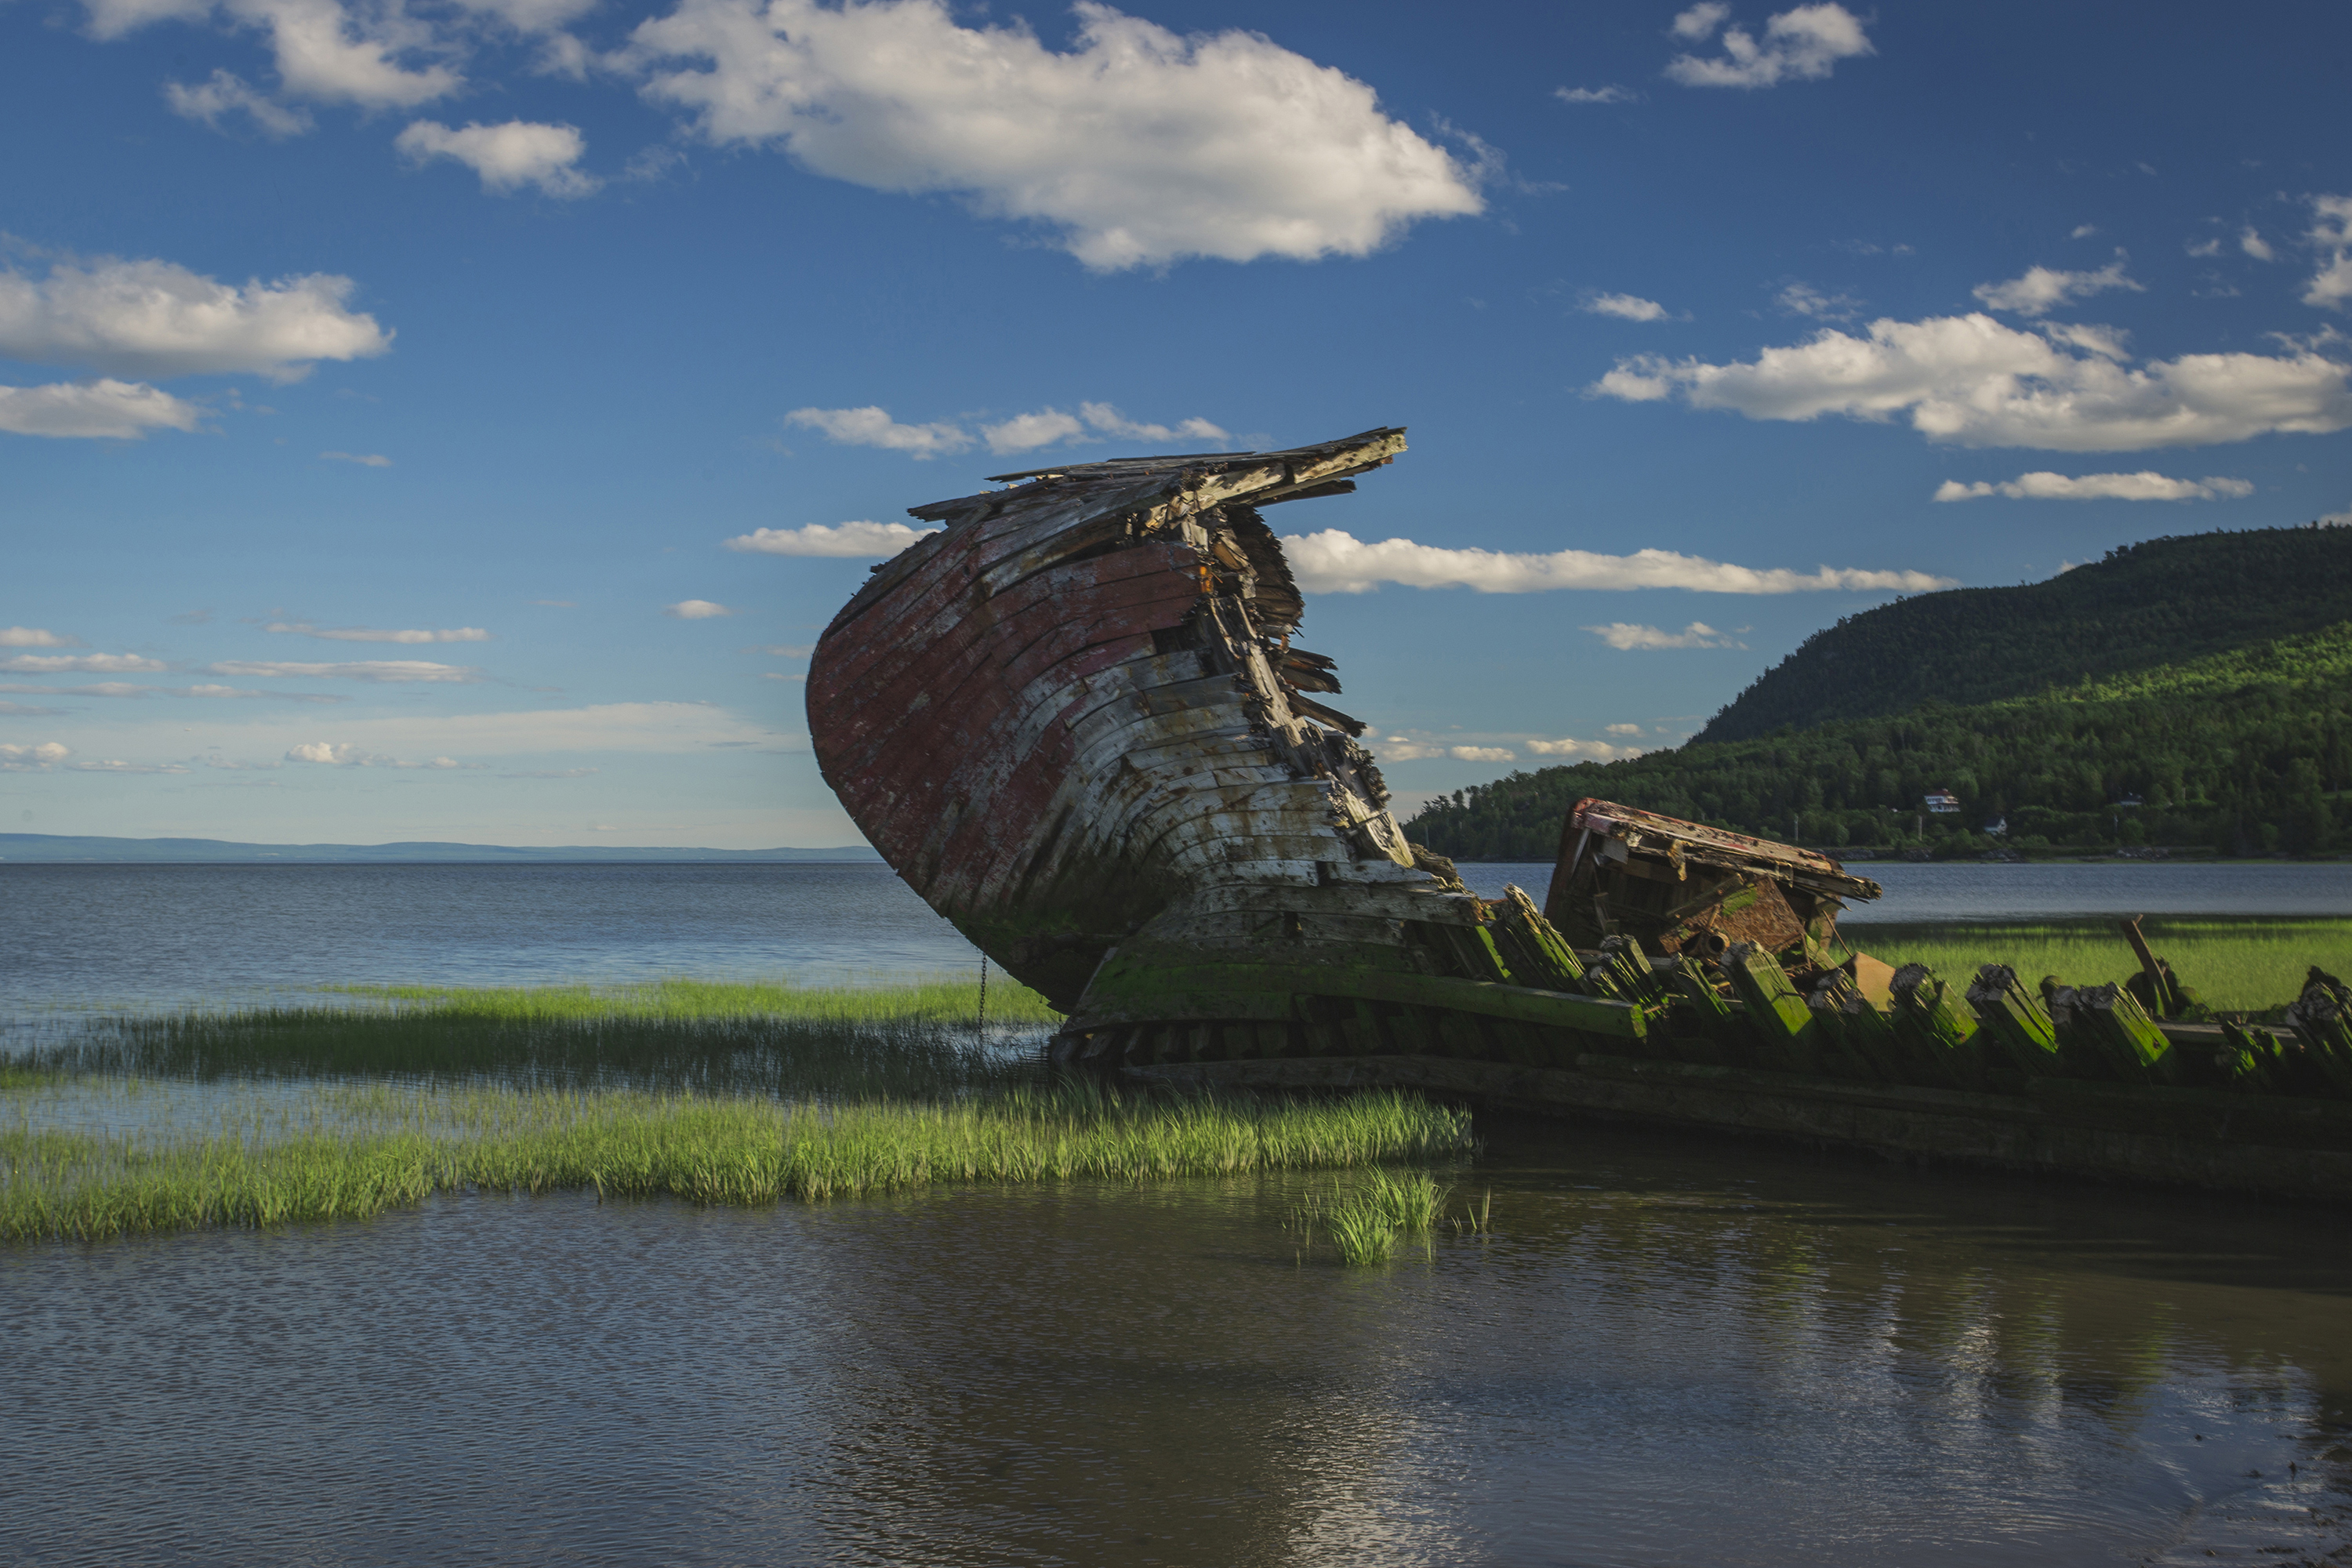 jp-valery-jpvalery-photographer-down-the-river-st-lawrence-quebec-1016